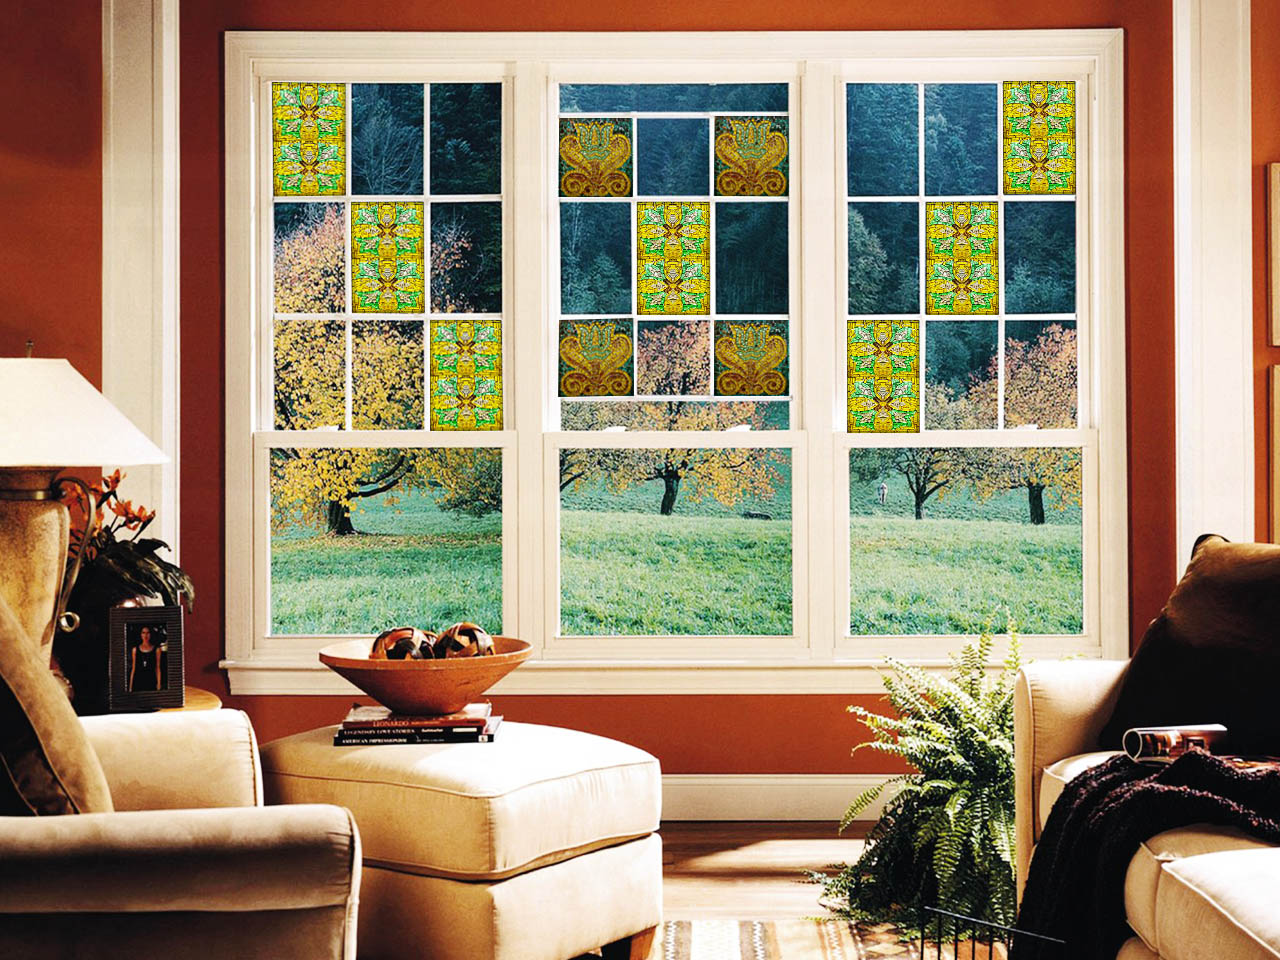 Window Tinting for Homes Home Depot | Frosted Window Film for Front Door | Window Film Home Depot